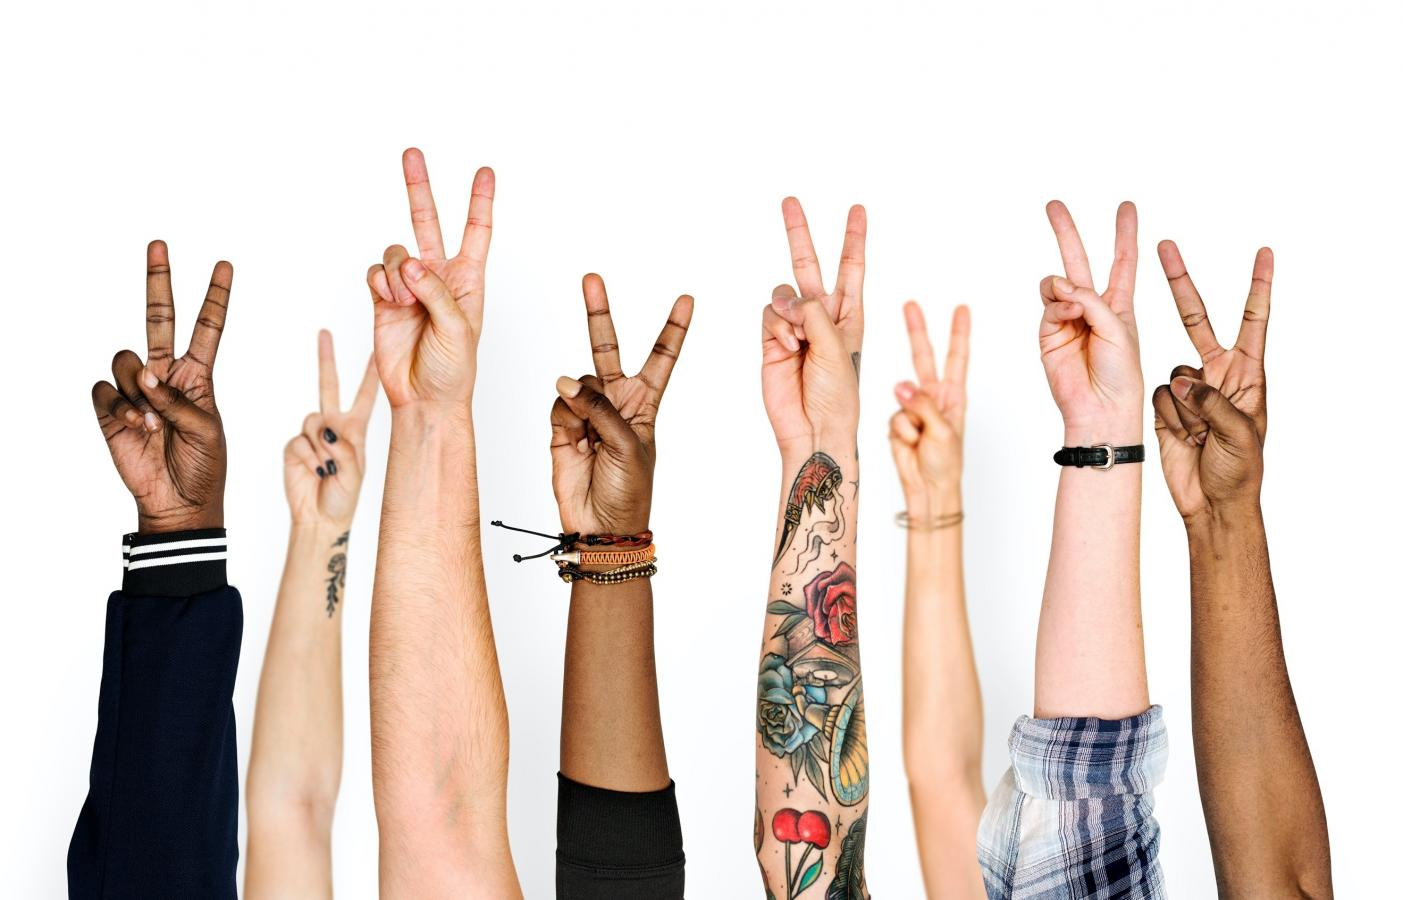 Hands from multiple ethnicities all showing the peace sign